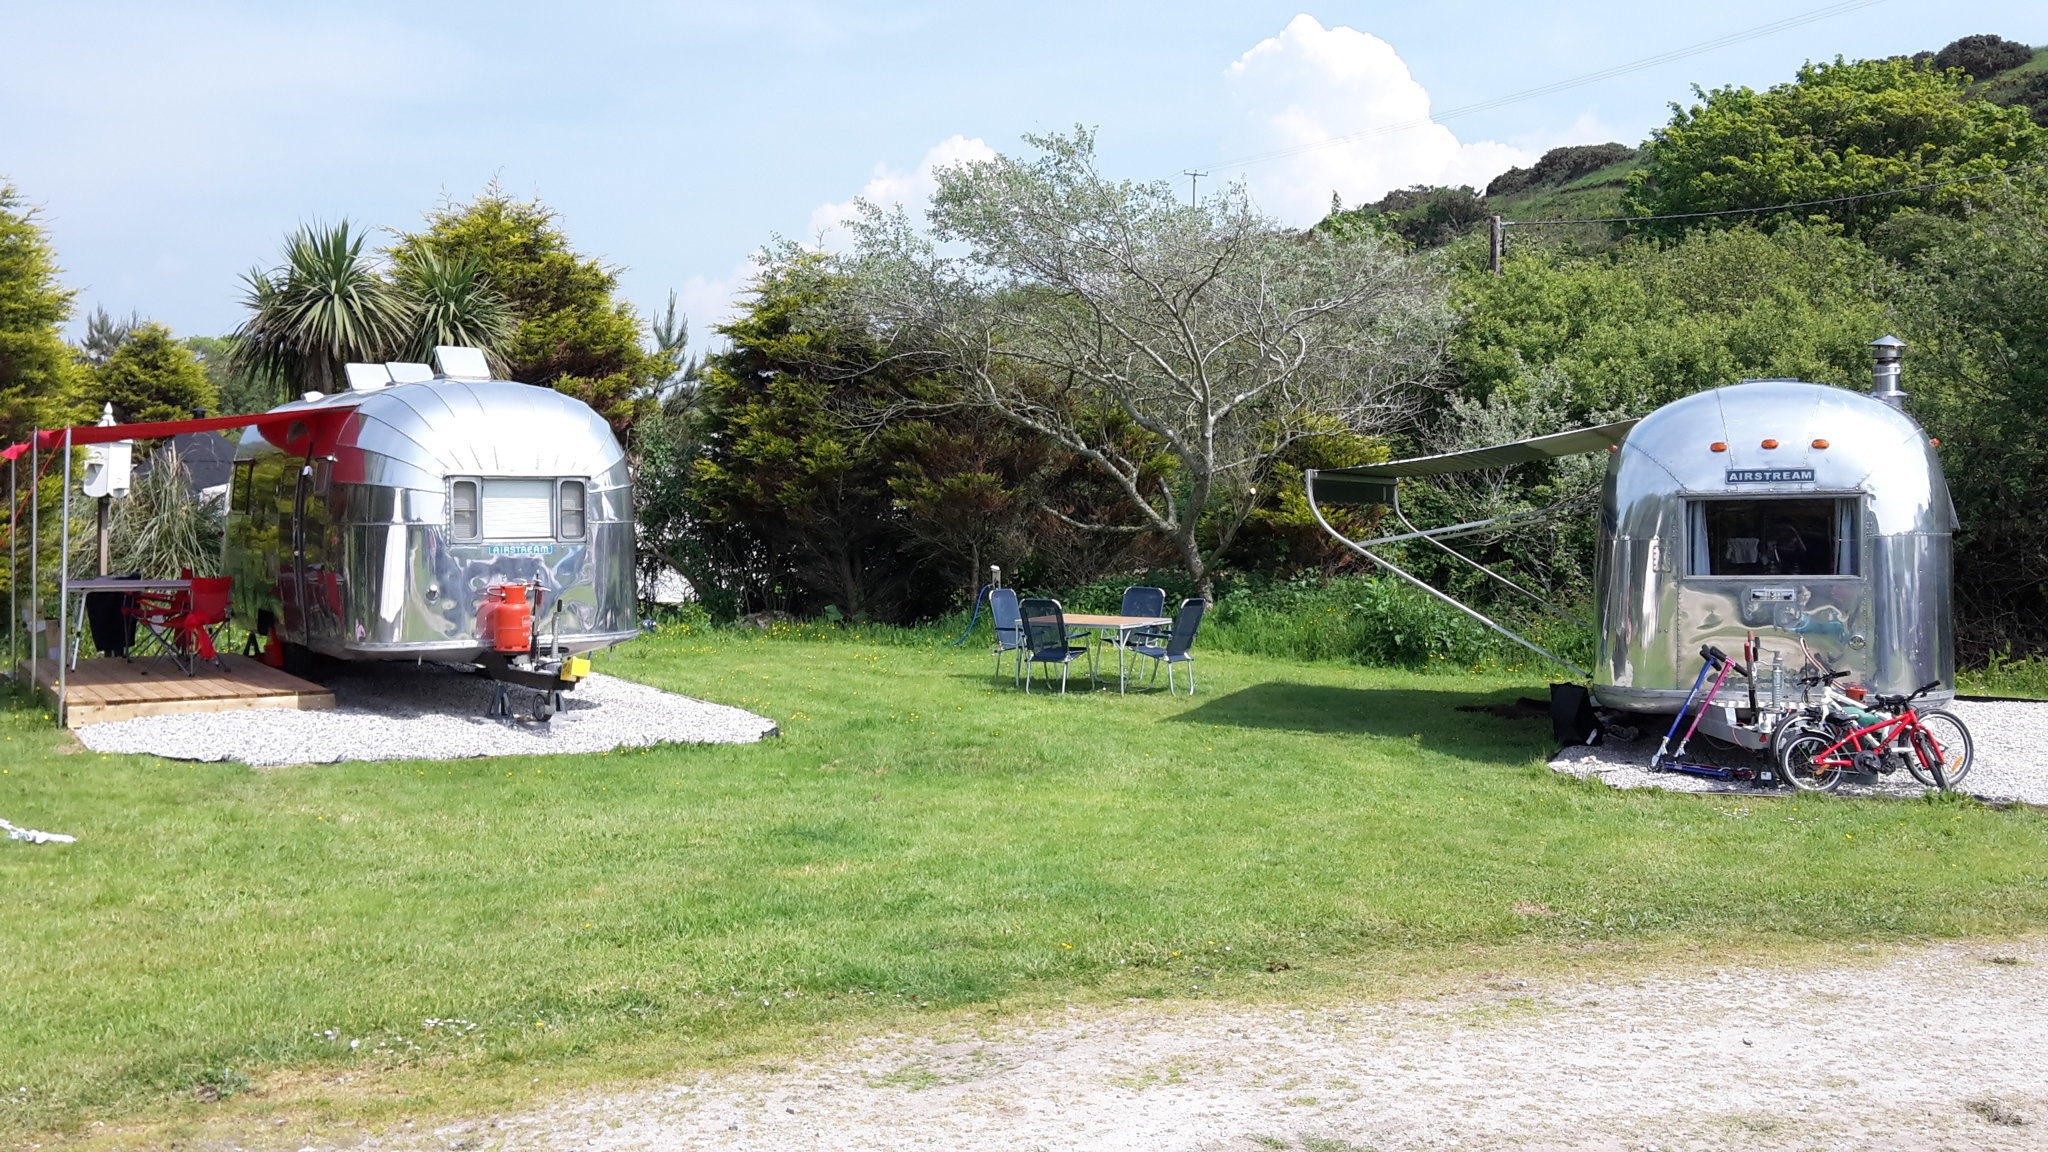 Another Airstream at Coastal Valley Cornwall